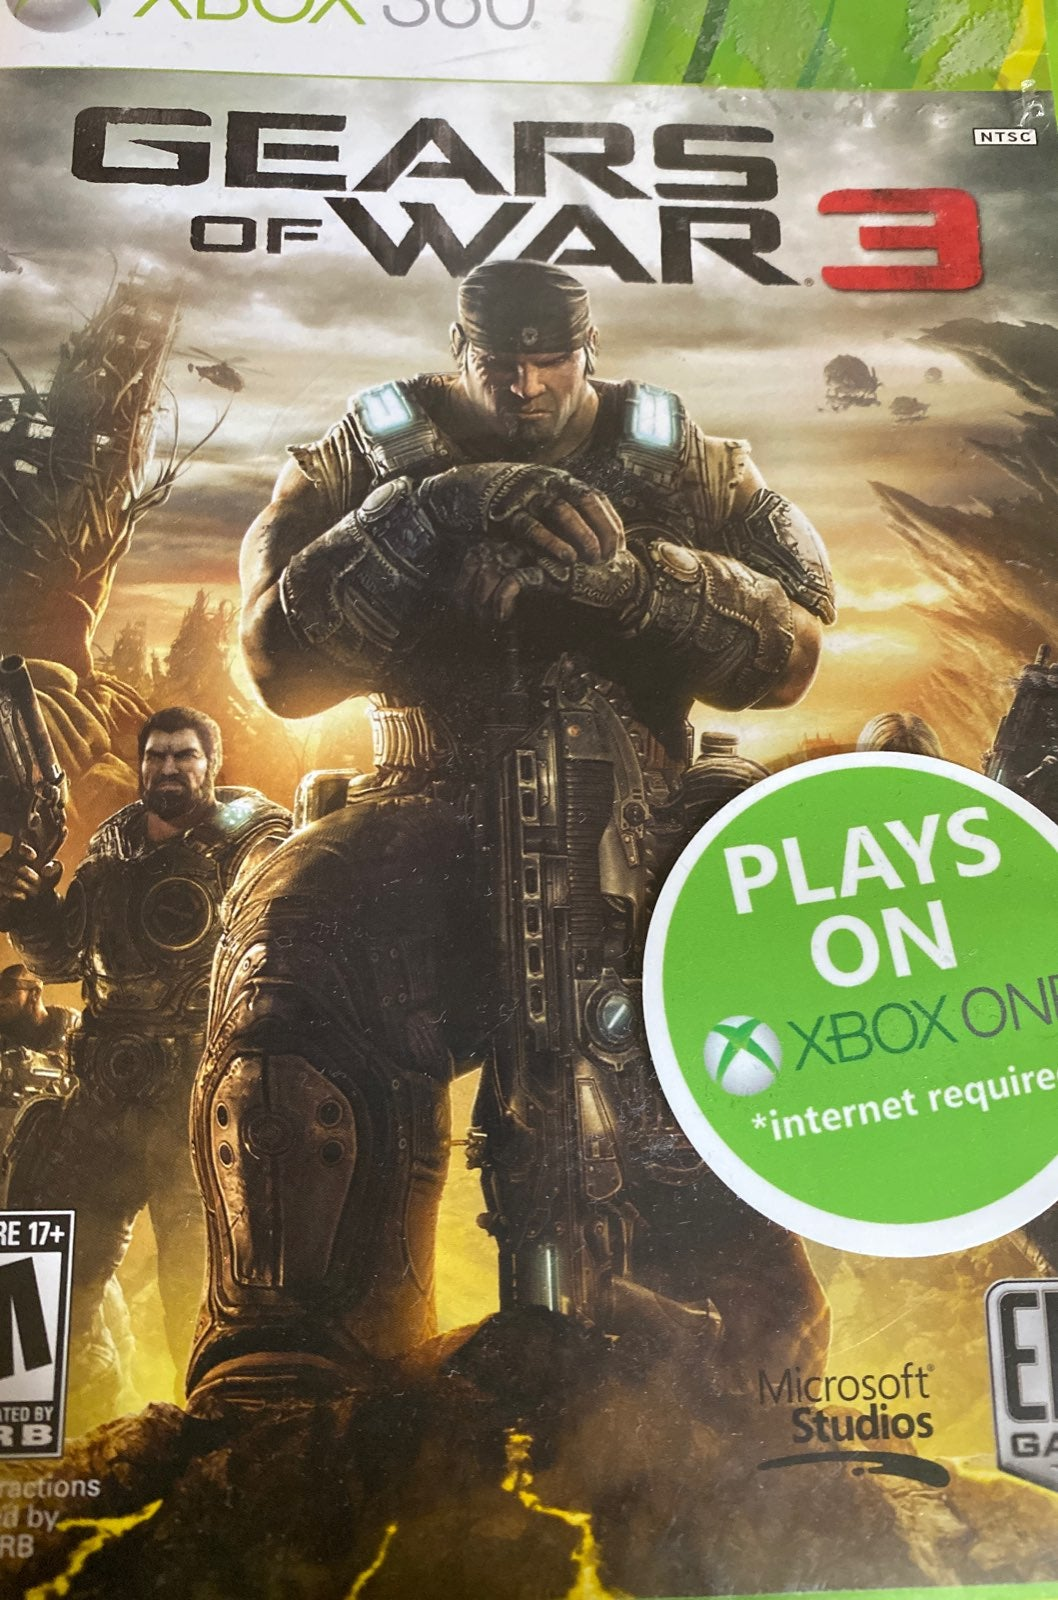 Multyplayer gears of war 360 and xbox 1